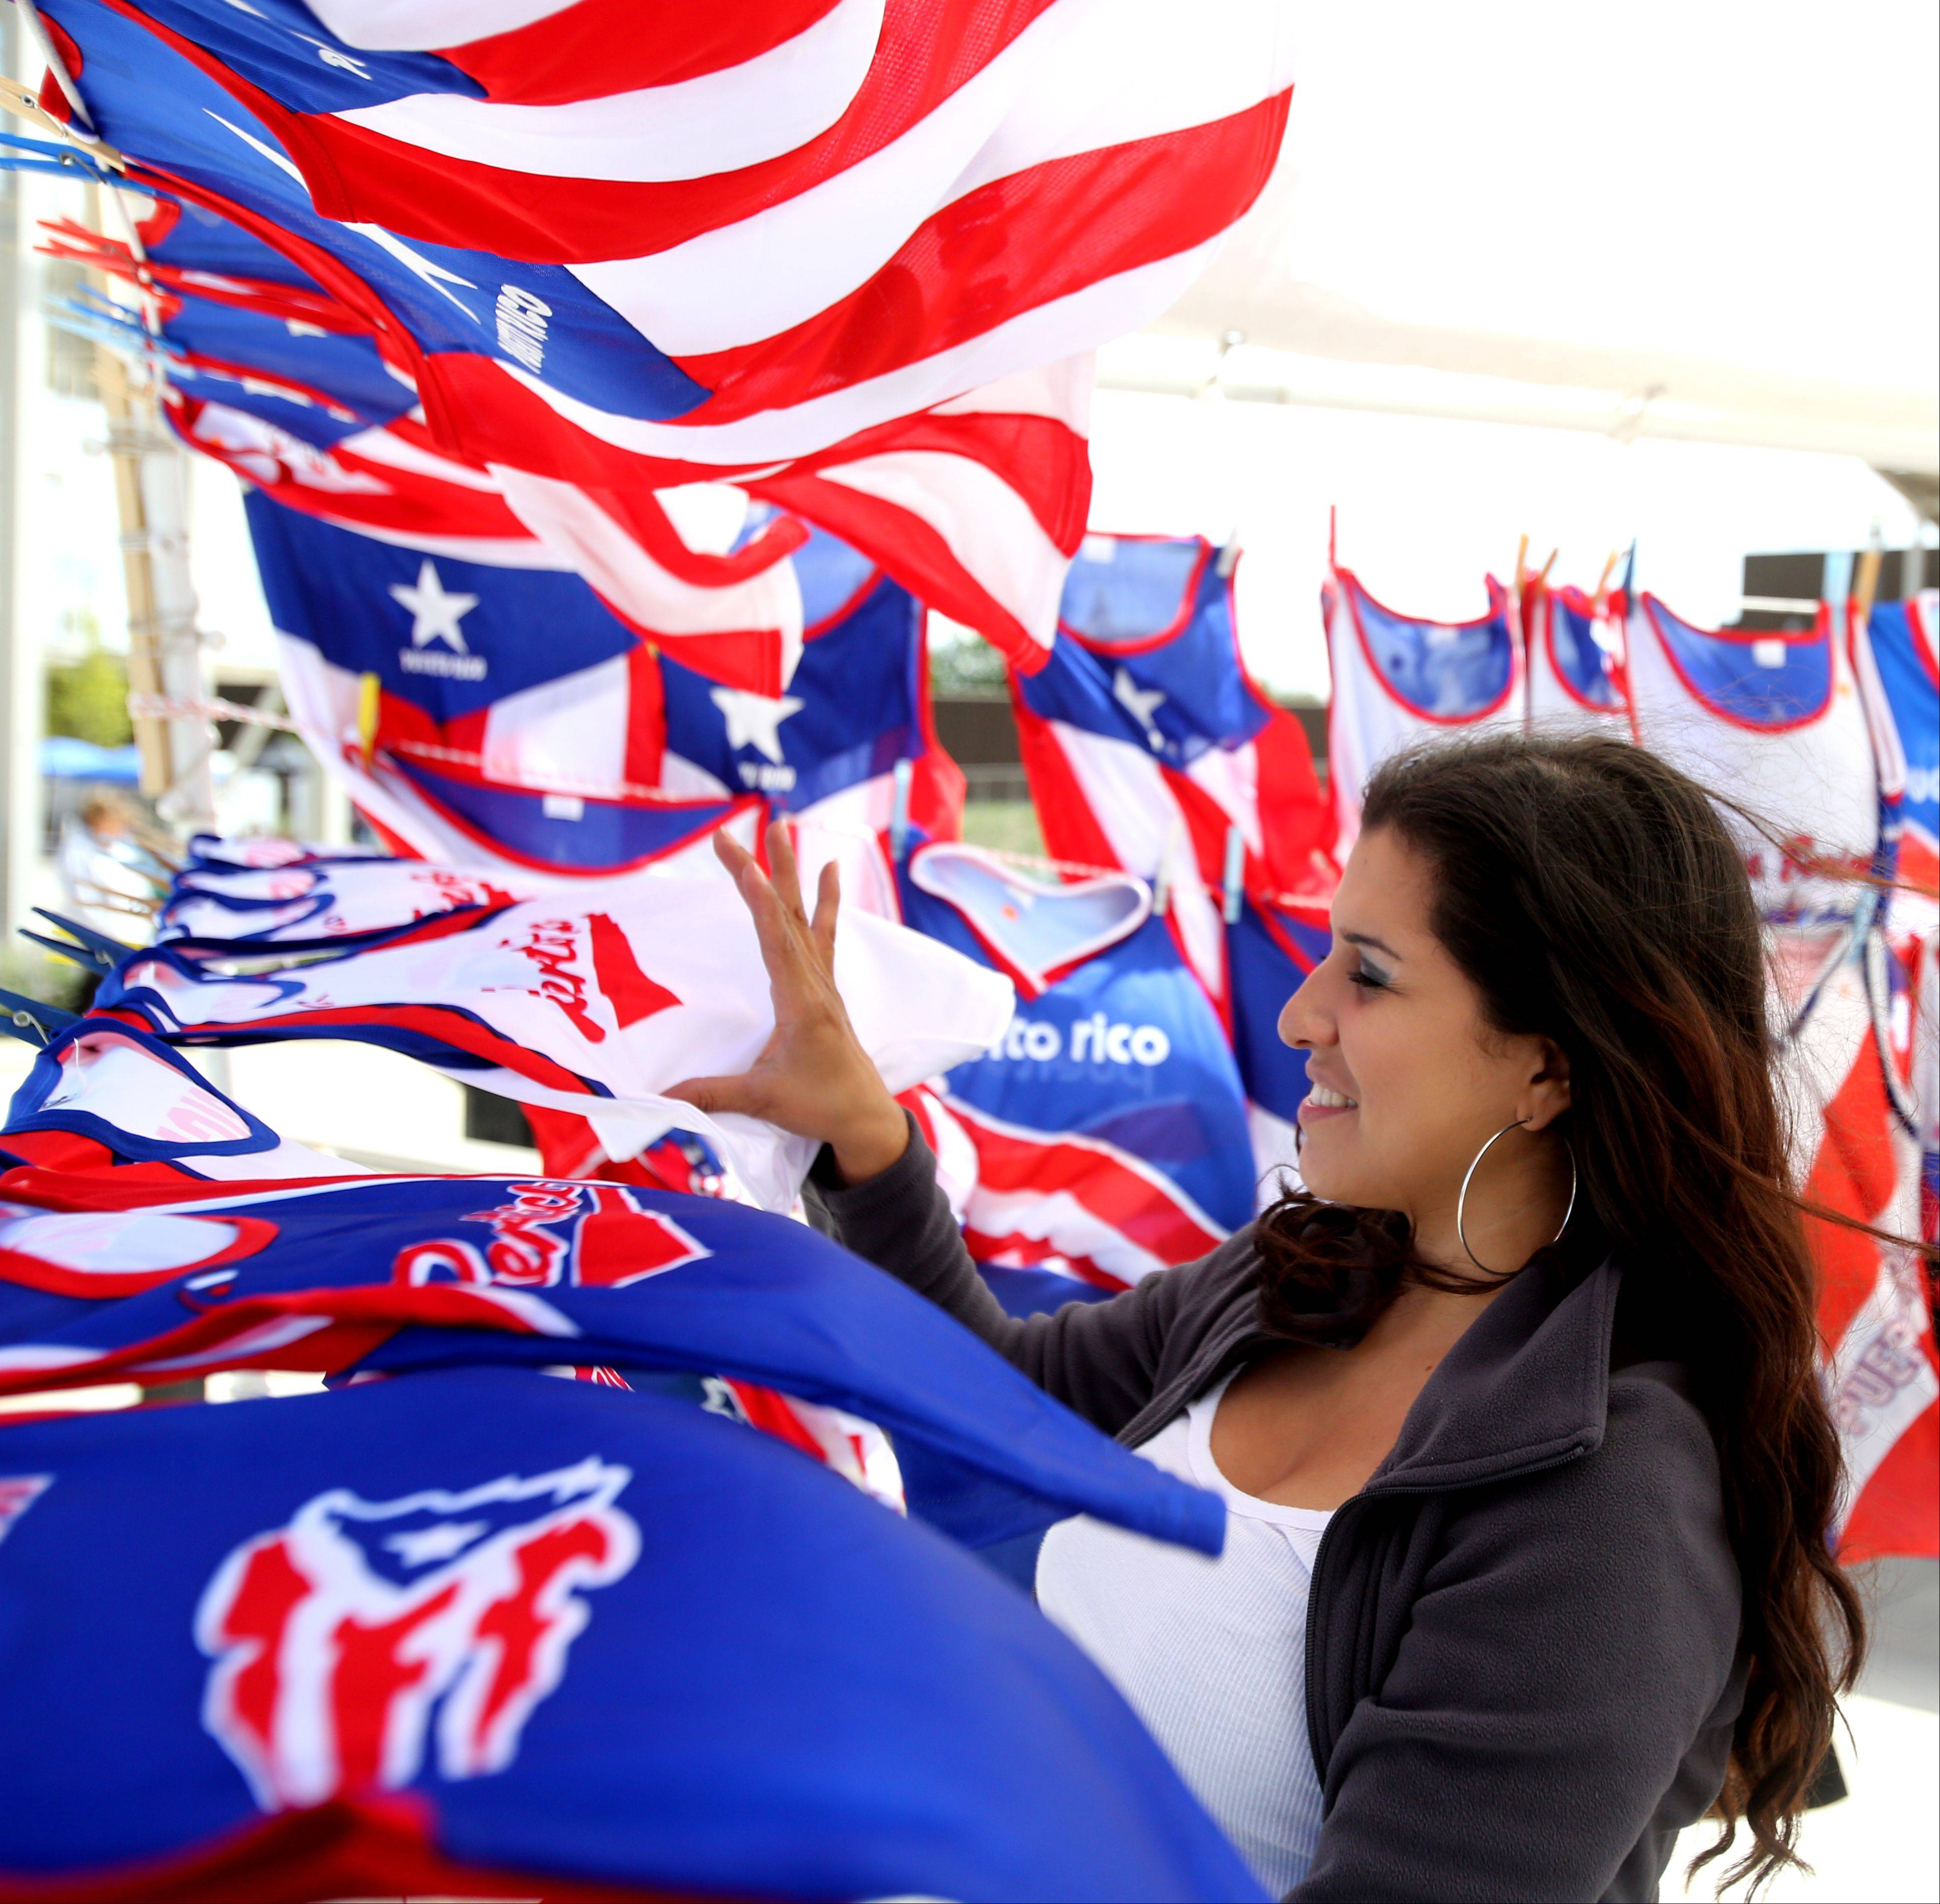 Vendor Yessica Guzman sells souvenir novelties during the Puerto Rican Heritage Fest at RiverEdge Park in Aurora.